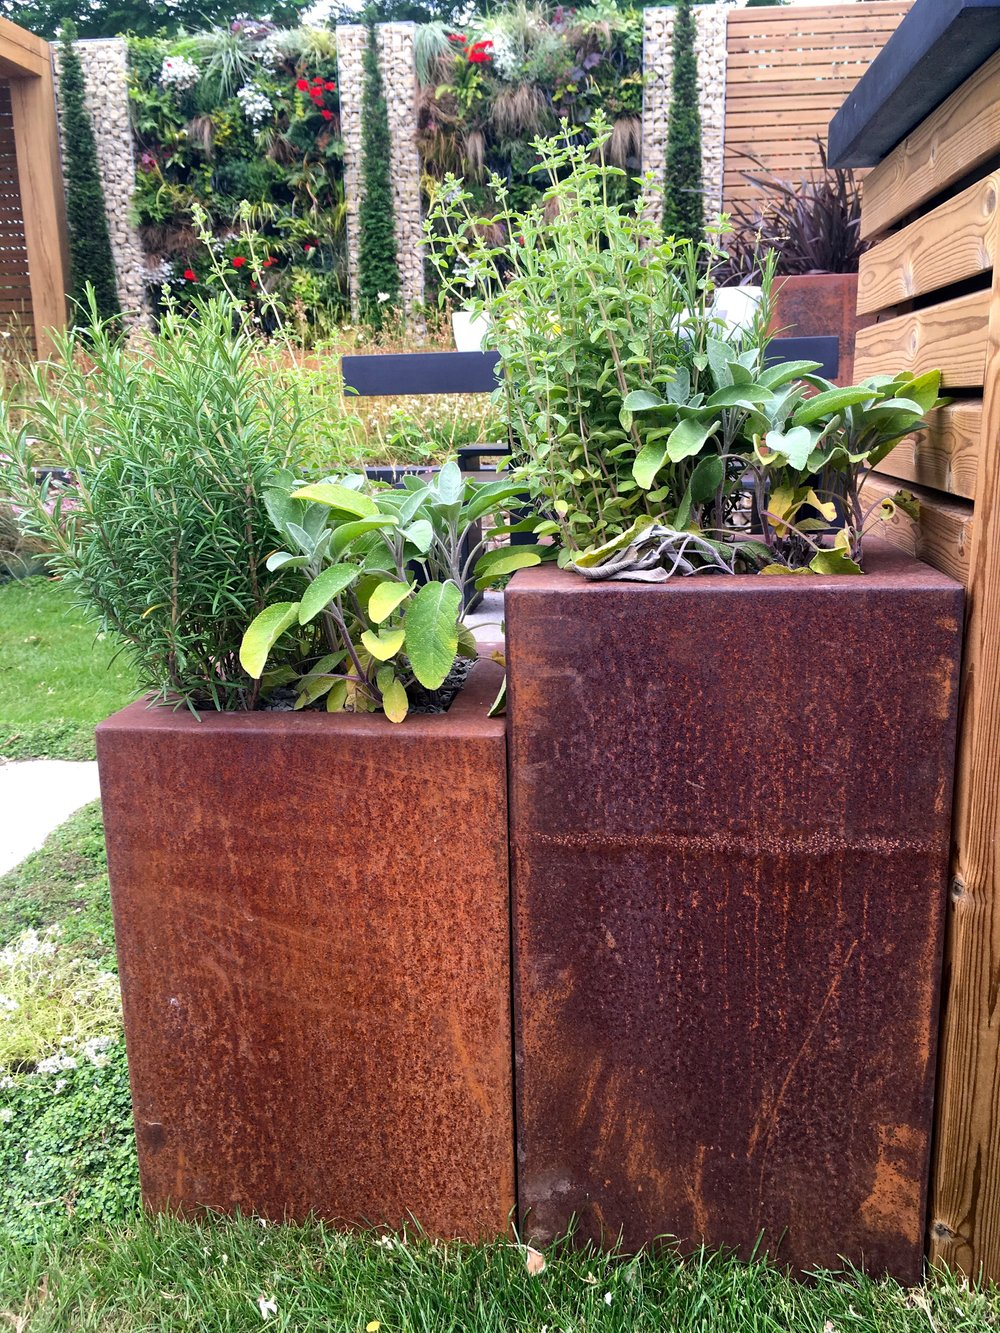 Corten steel planters - swoon!